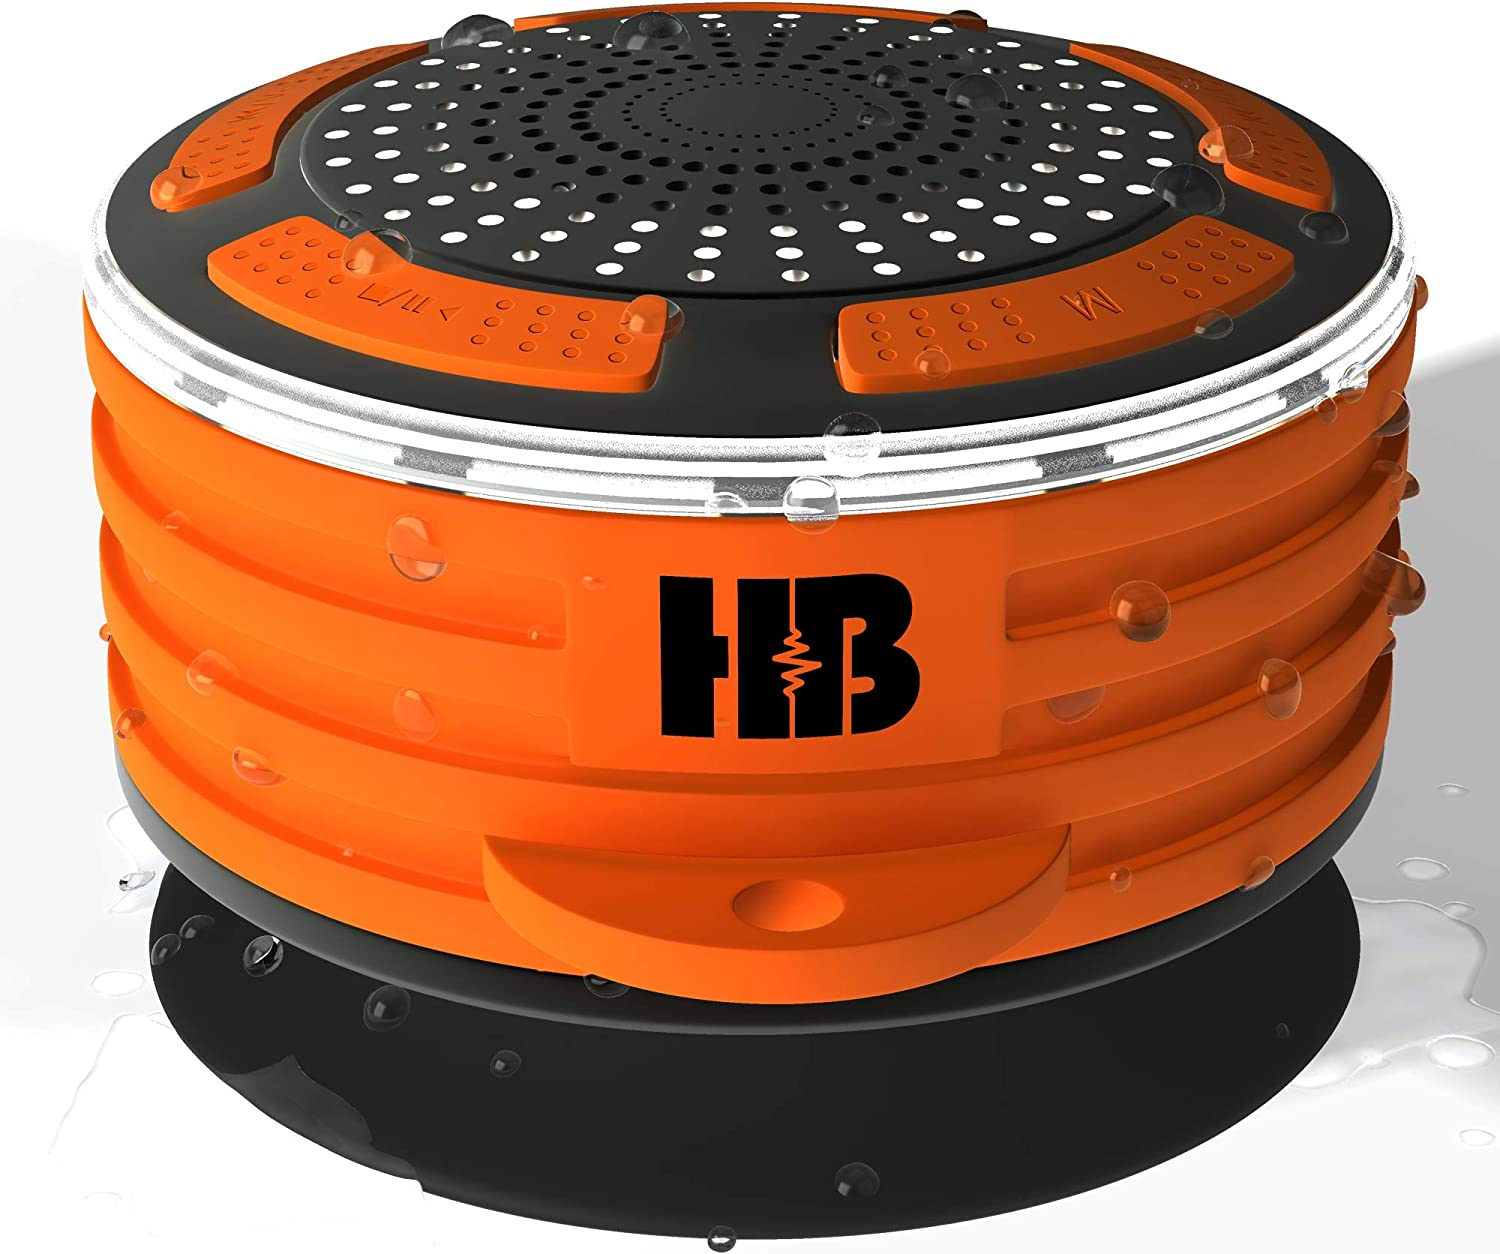 HB Illumination – Portable Bluetooth Waterproof Shower Radio – IPX7 Waterproof, Shockproof and Dustproof – Dynamic Surround Sound with Deep Powerful Bass. Bluetooth 4.0 and FM Radio.